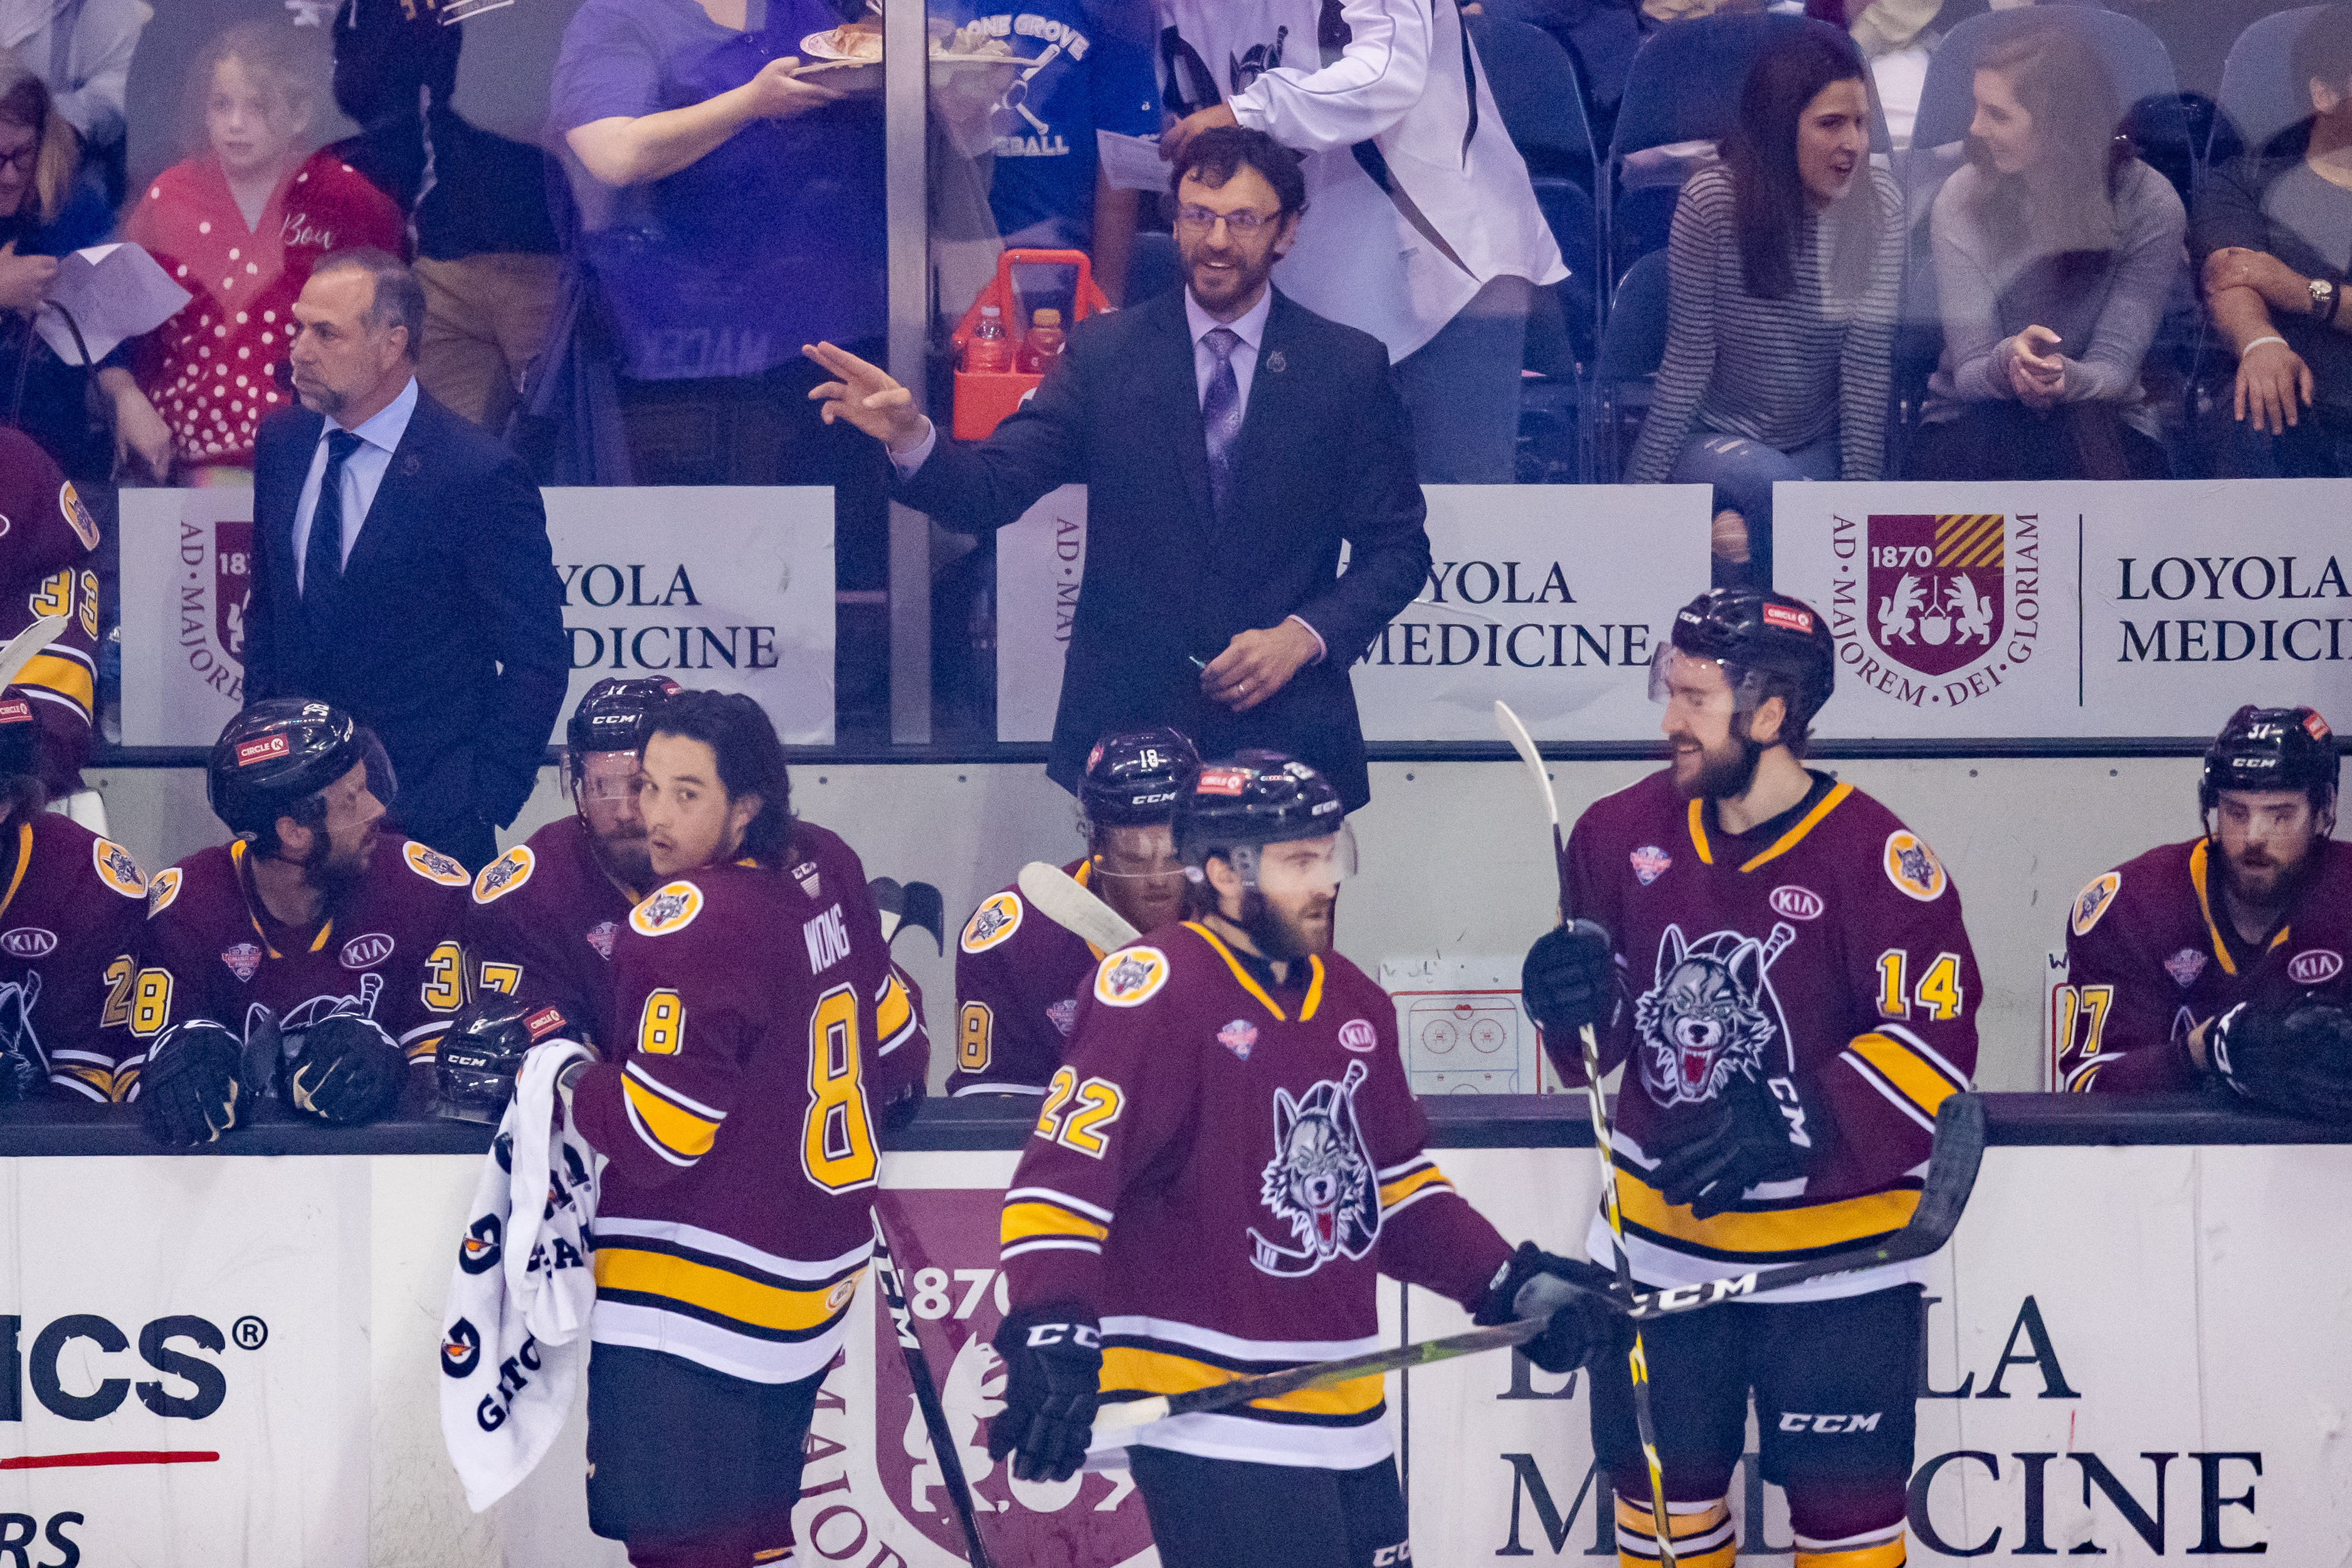 ROSEMONT, IL - JUNE 08: Chicago Wolves head coach Rocky Thompson during game five of the AHL Calder Cup Finals between the Charlotte Checkers and the Chicago Wolves on June 8, 2019, at the Allstate Arena in Rosemont, IL.